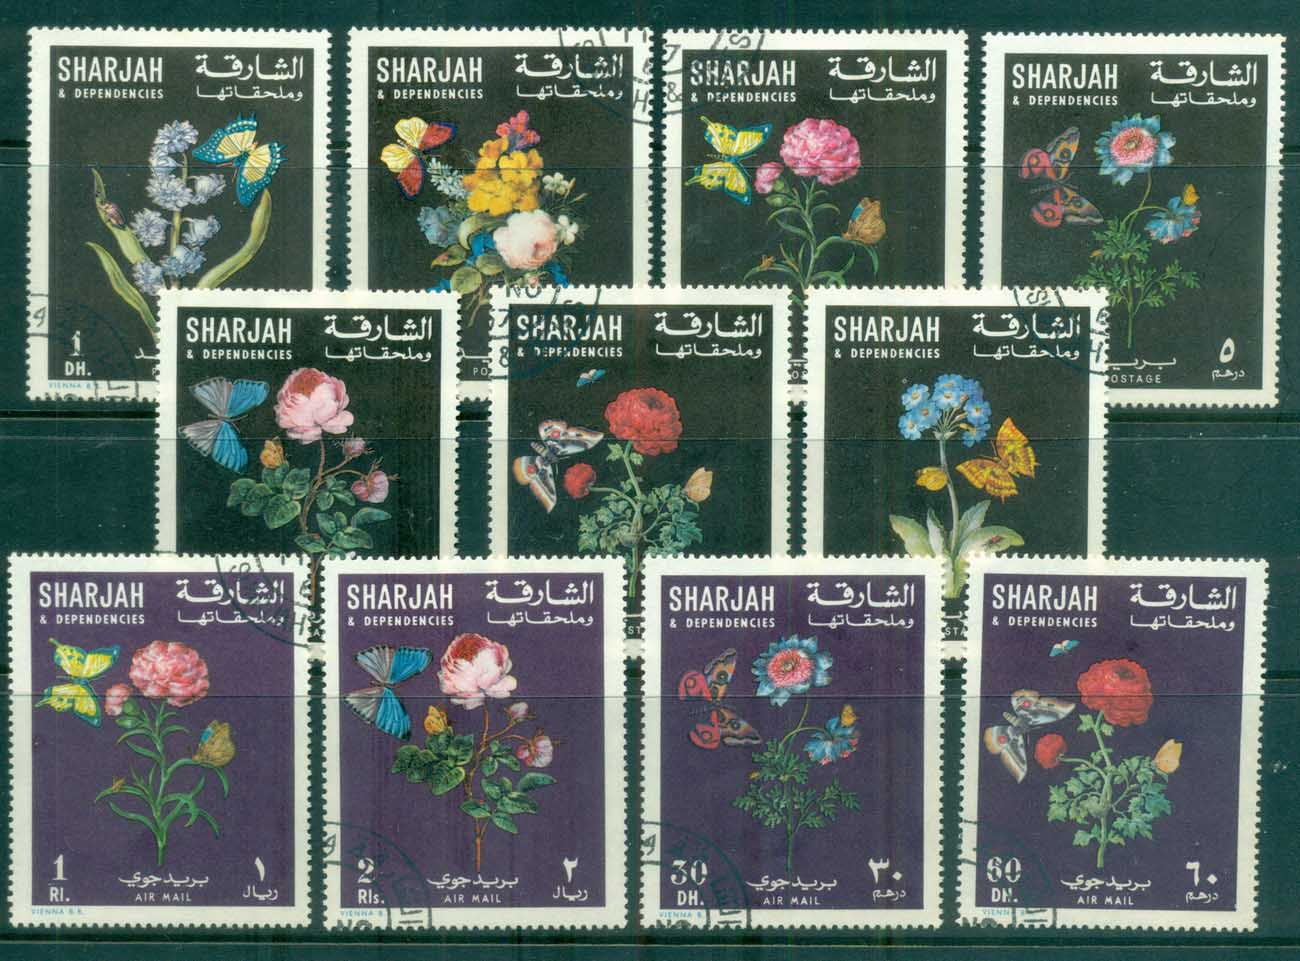 Sharjah 1967 Flowers & Butterflies CTO